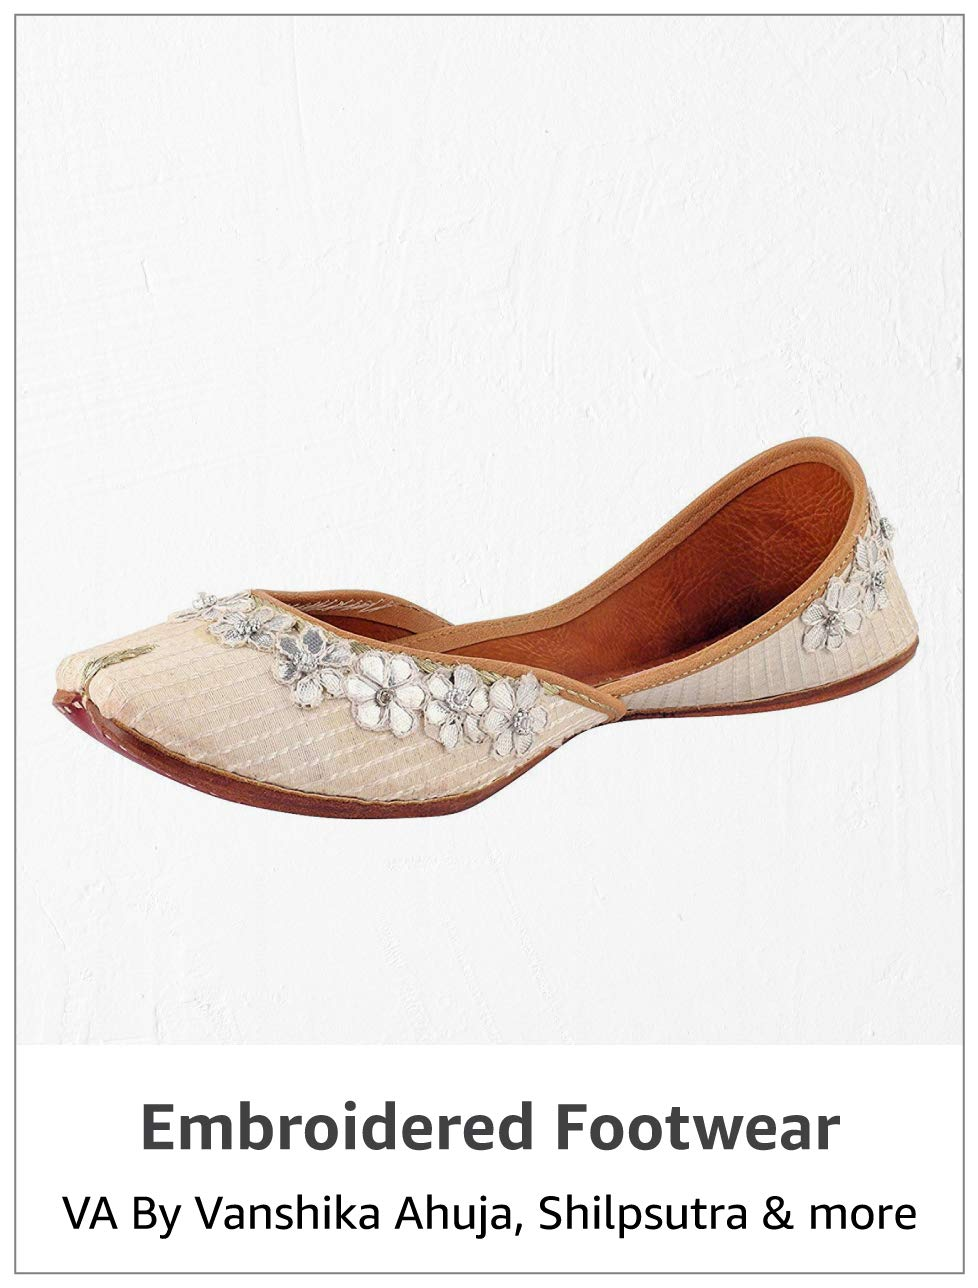 Embroidered Footwear